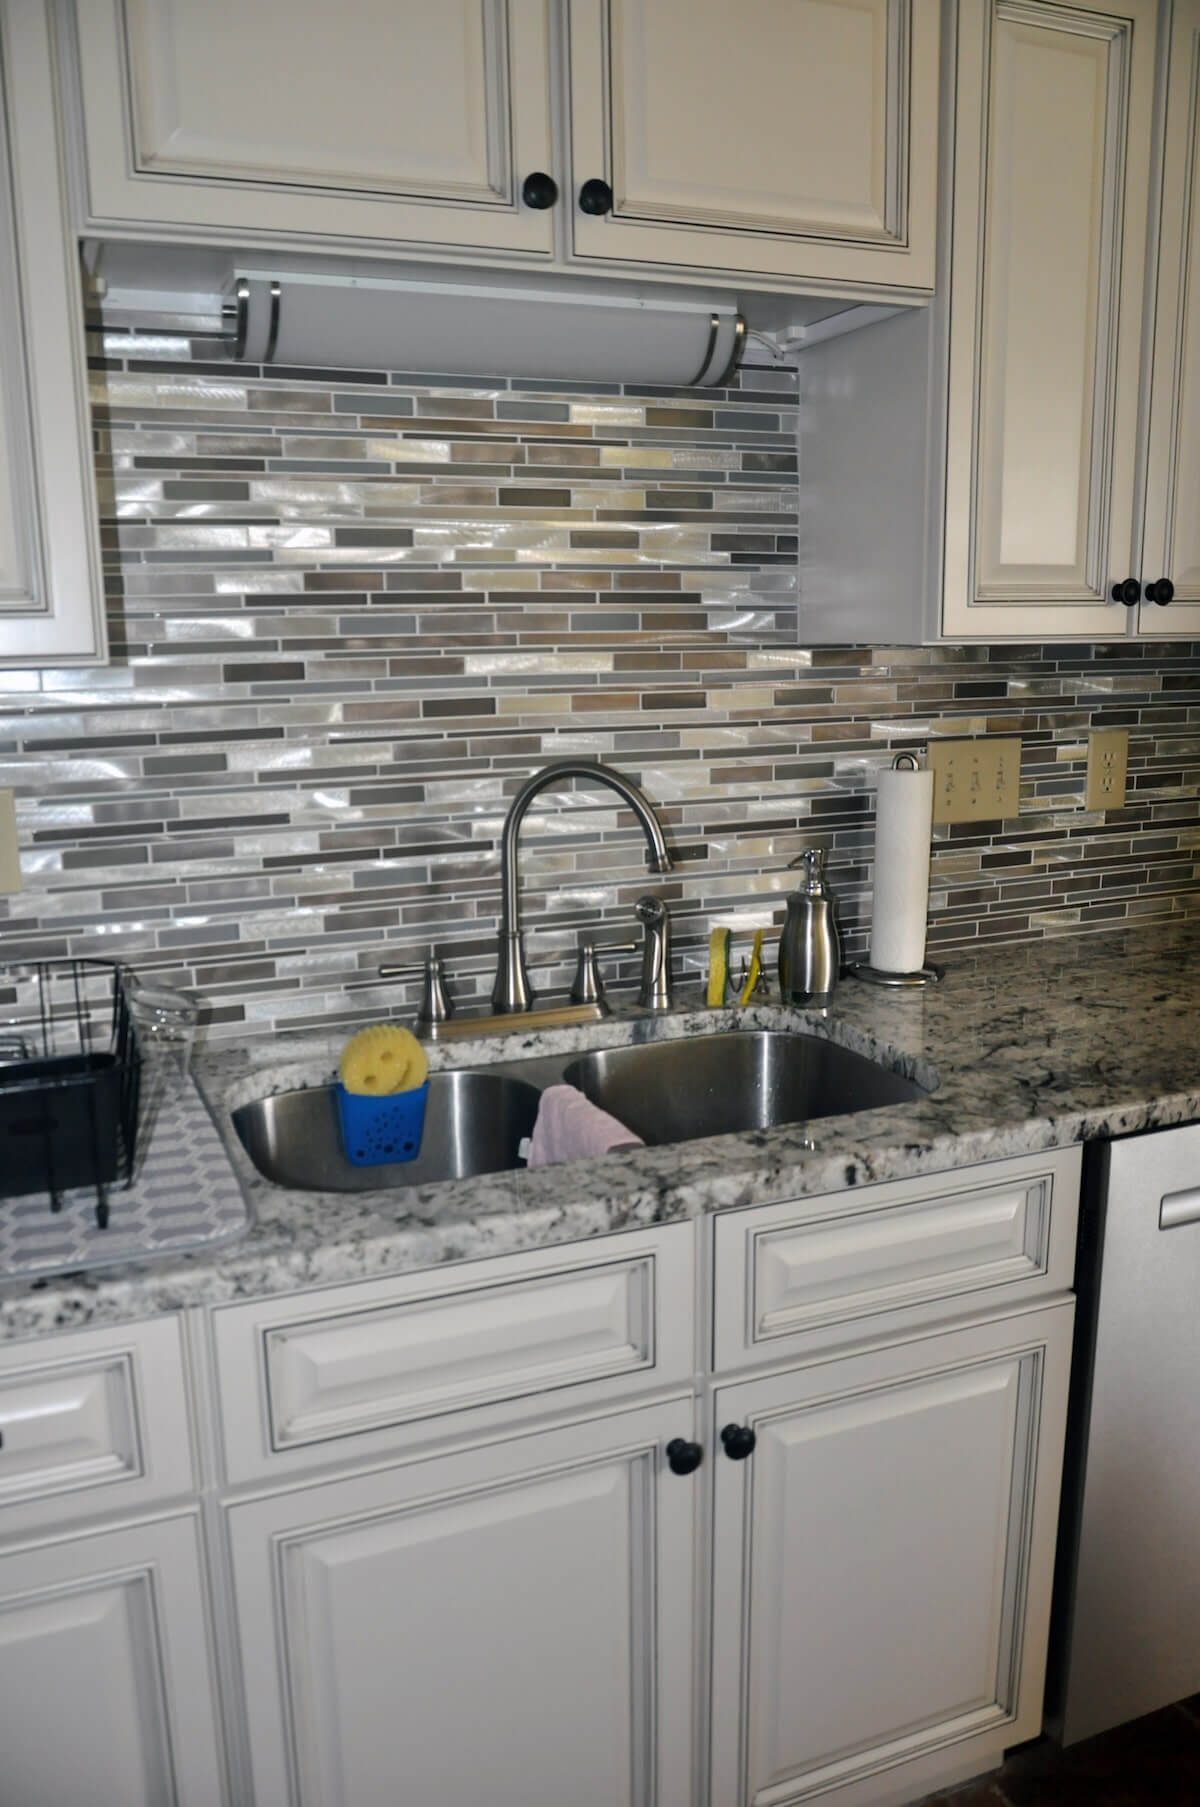 Silver tile backsplash with stainless steel sink